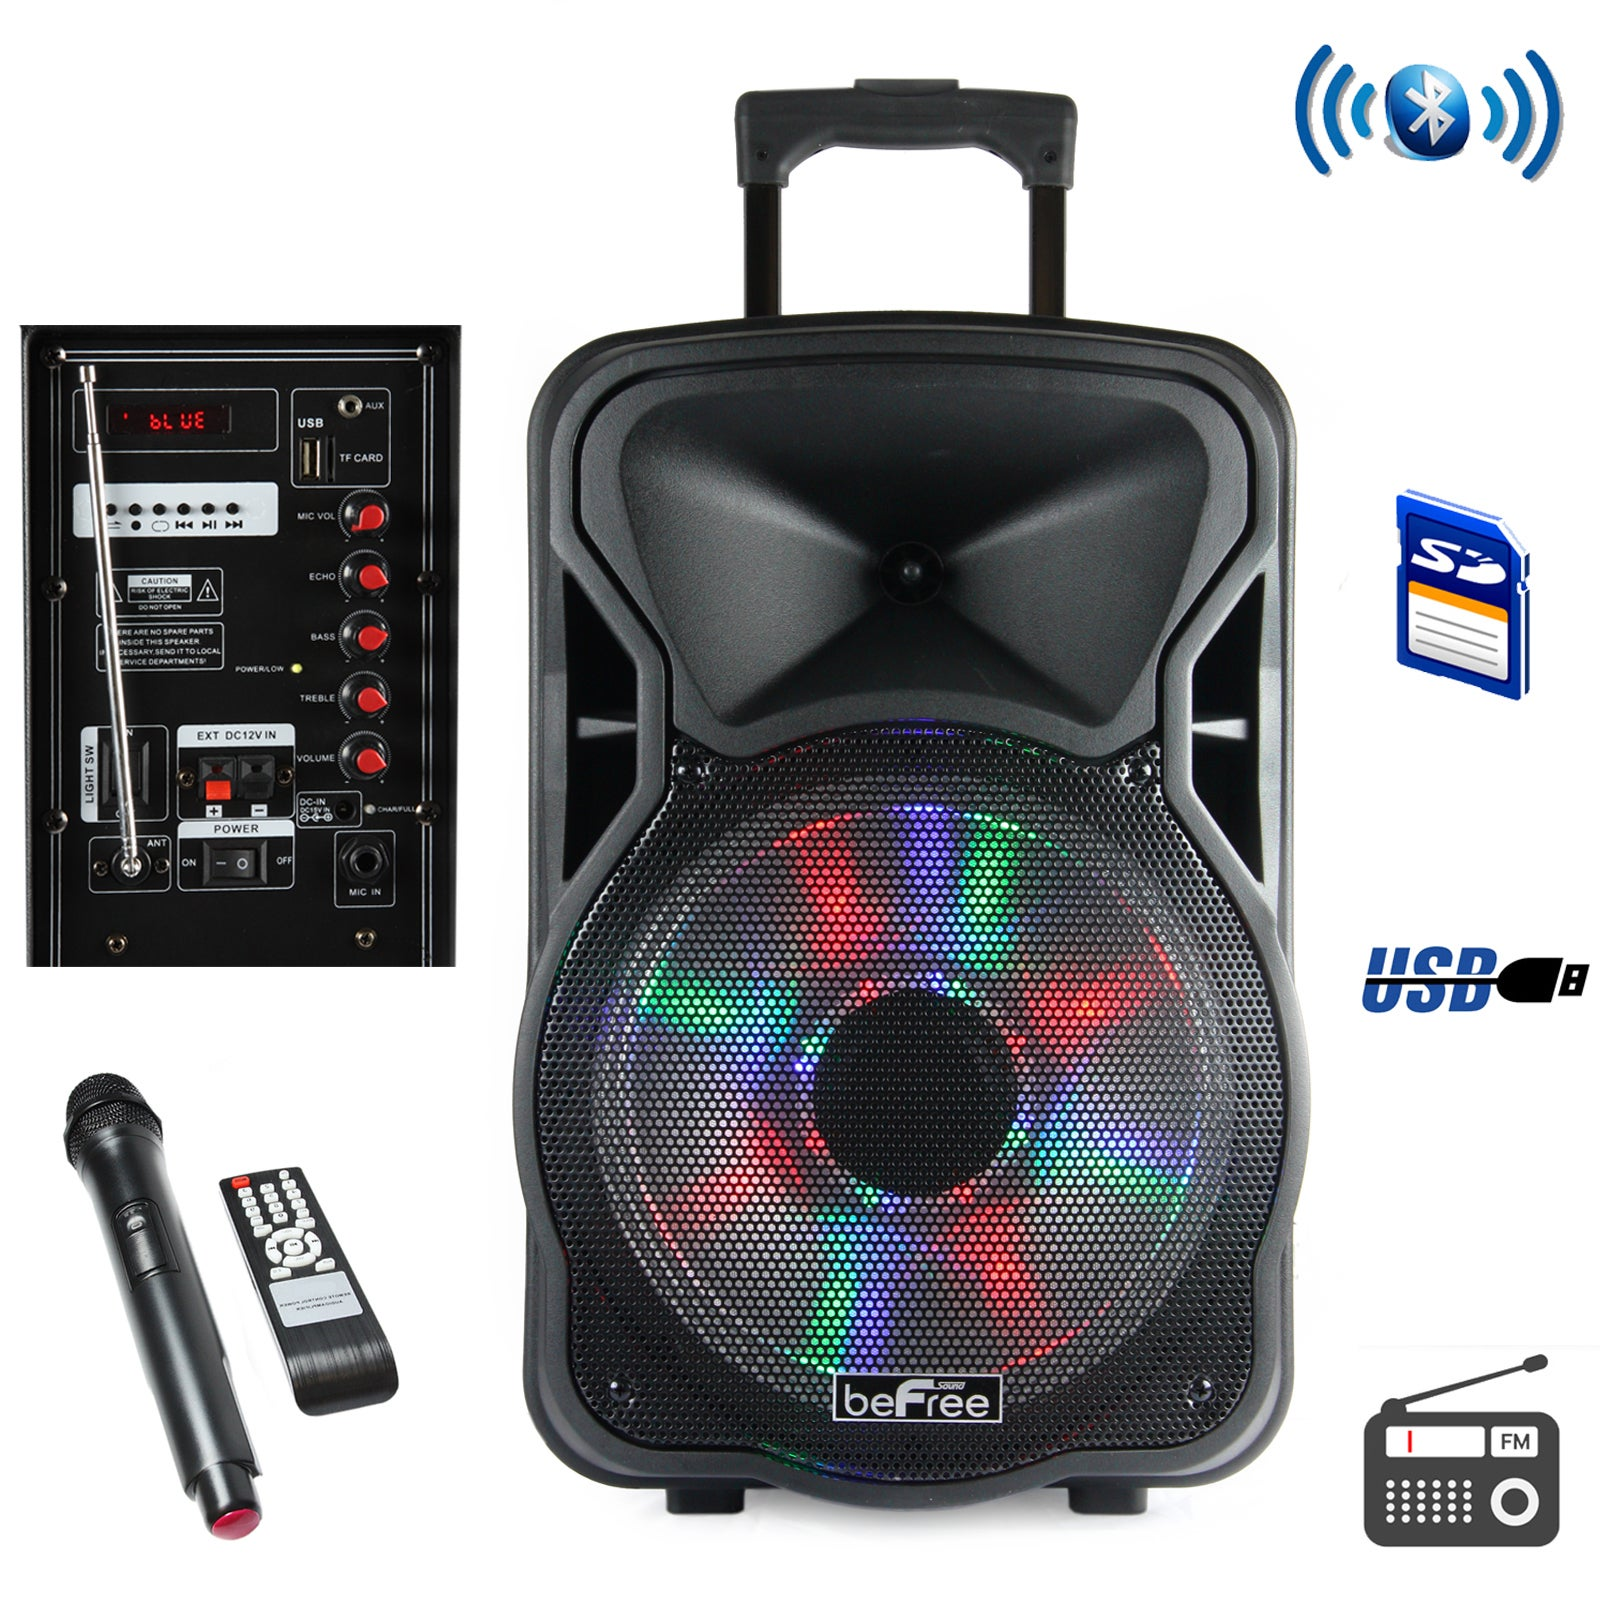 6-Inch Portable Rechargeable Bluetooth Party Speaker with App Control